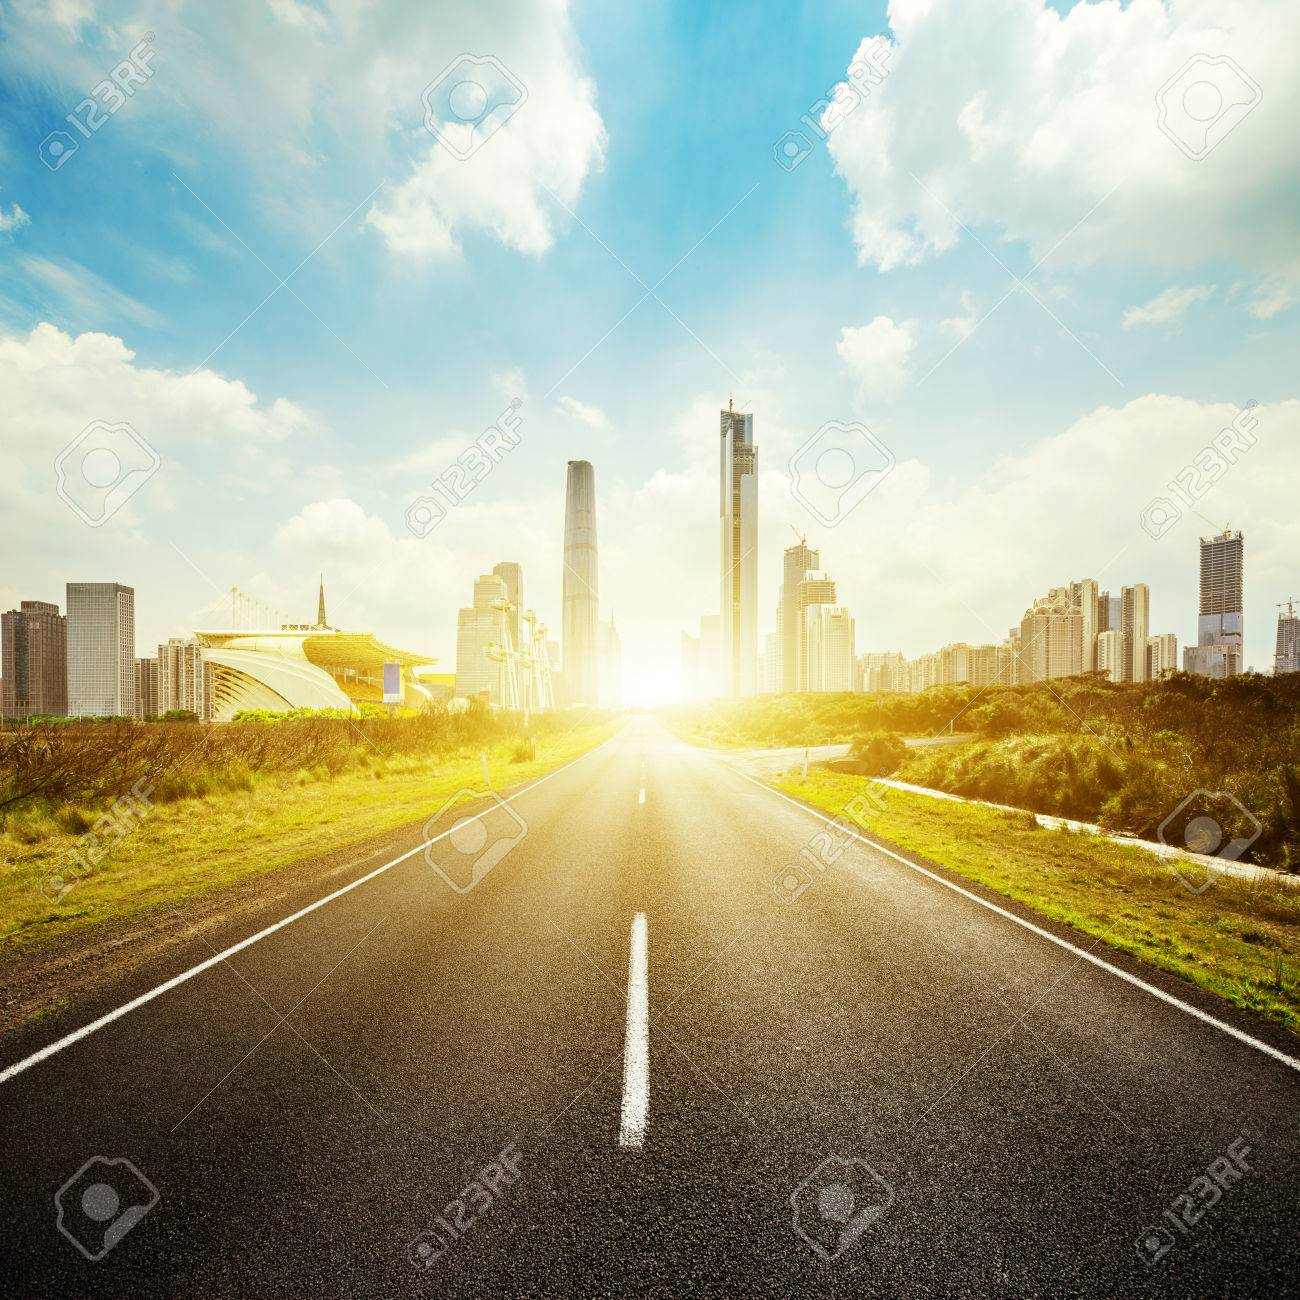 empty asphalt road with greenland aside and skyscrapers under sunbeam - 45548639